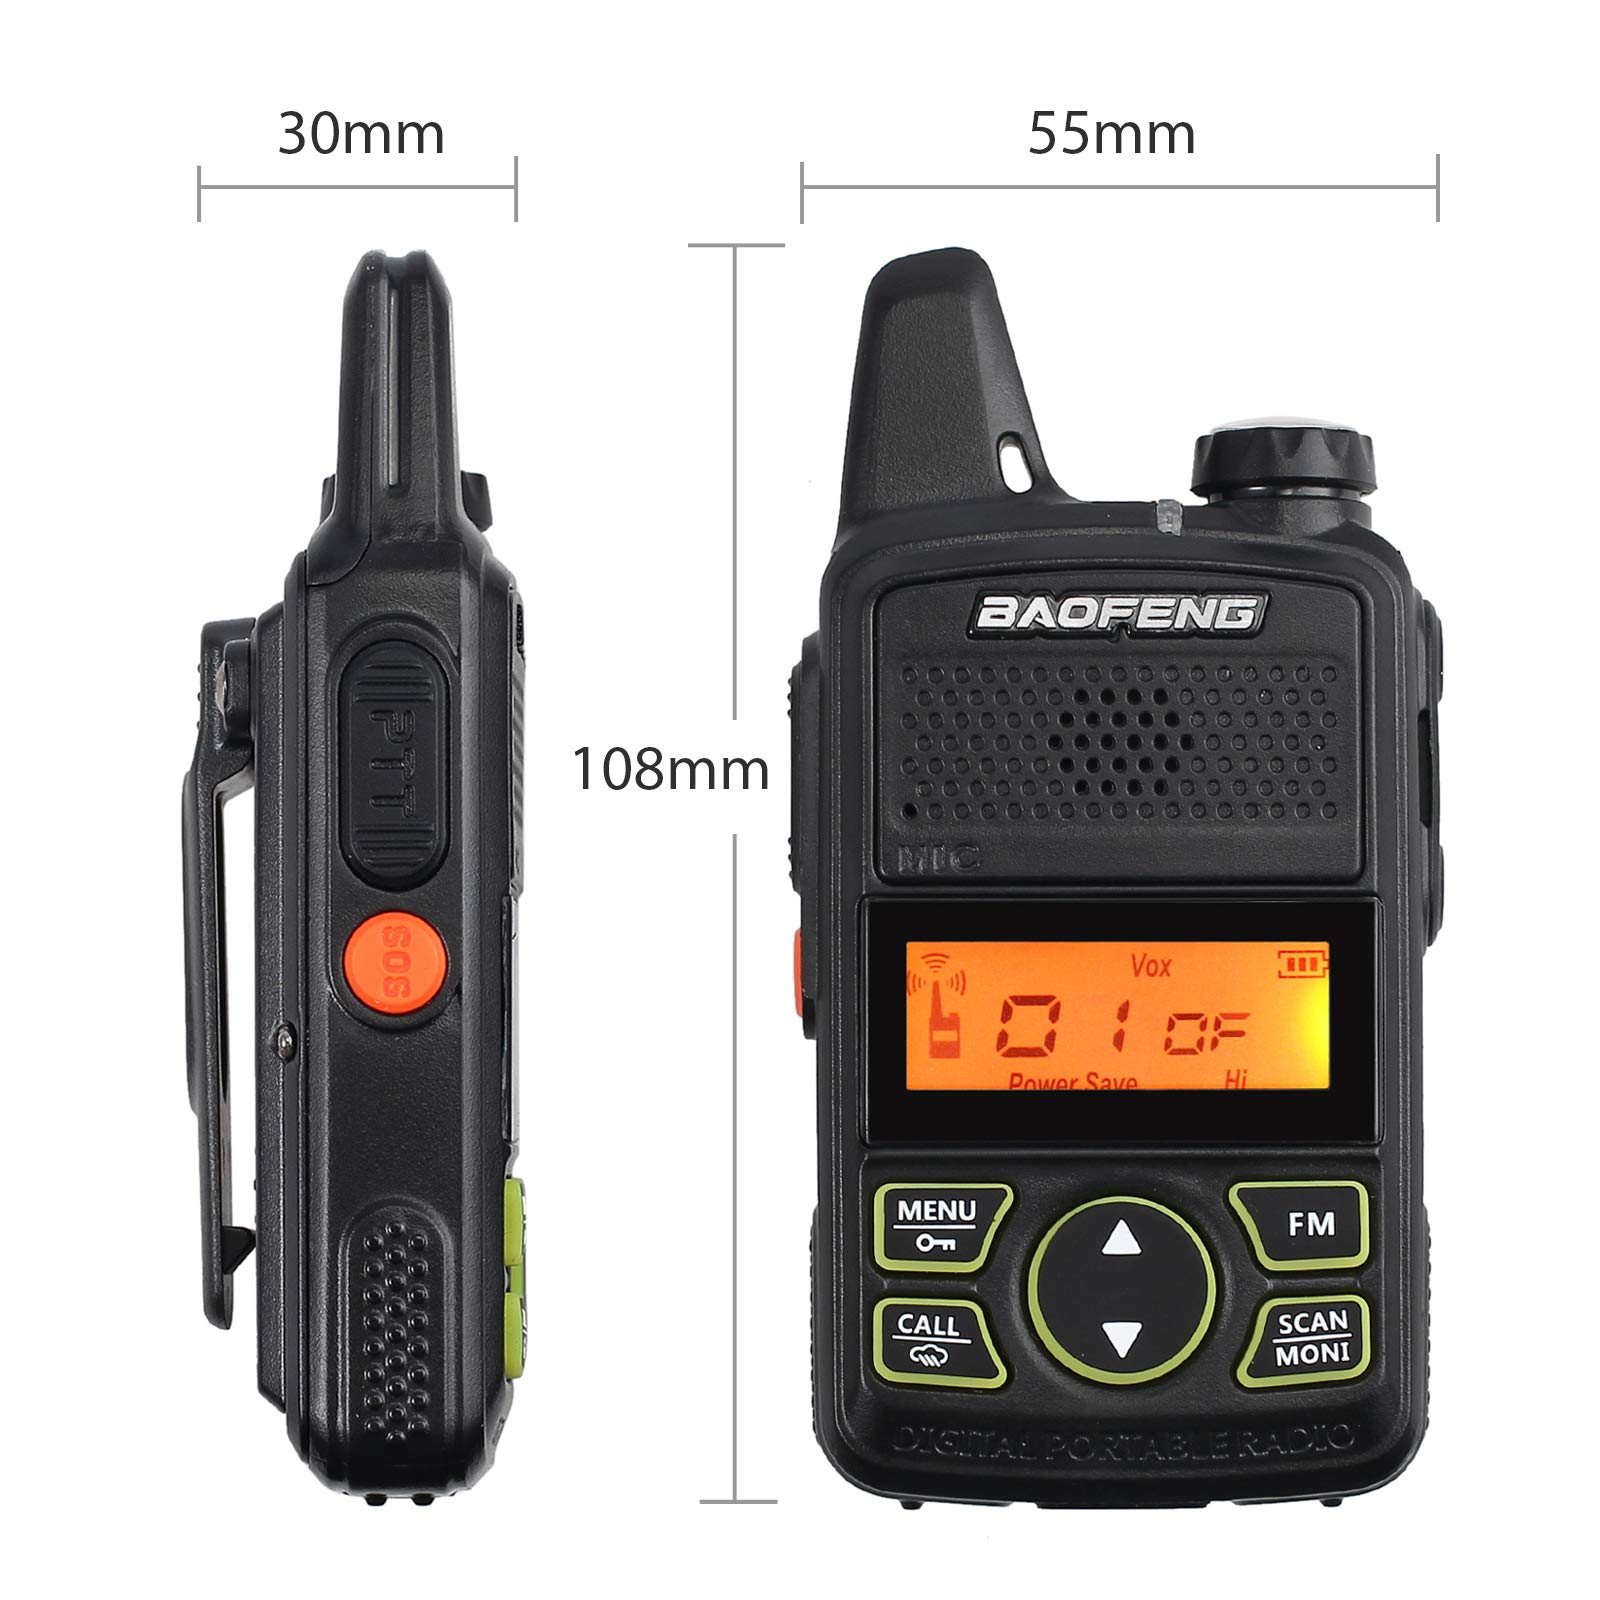 CAMWAY 2 Packs Mini Walkie Talkies T2 USB Rechargeable Long Range Two-Way Radios with Earpiece UHF 400-470Mhz Handle Portable for Family, Home, Cruise, Ship, Camping, Hiking by CAMWAY (Image #3)